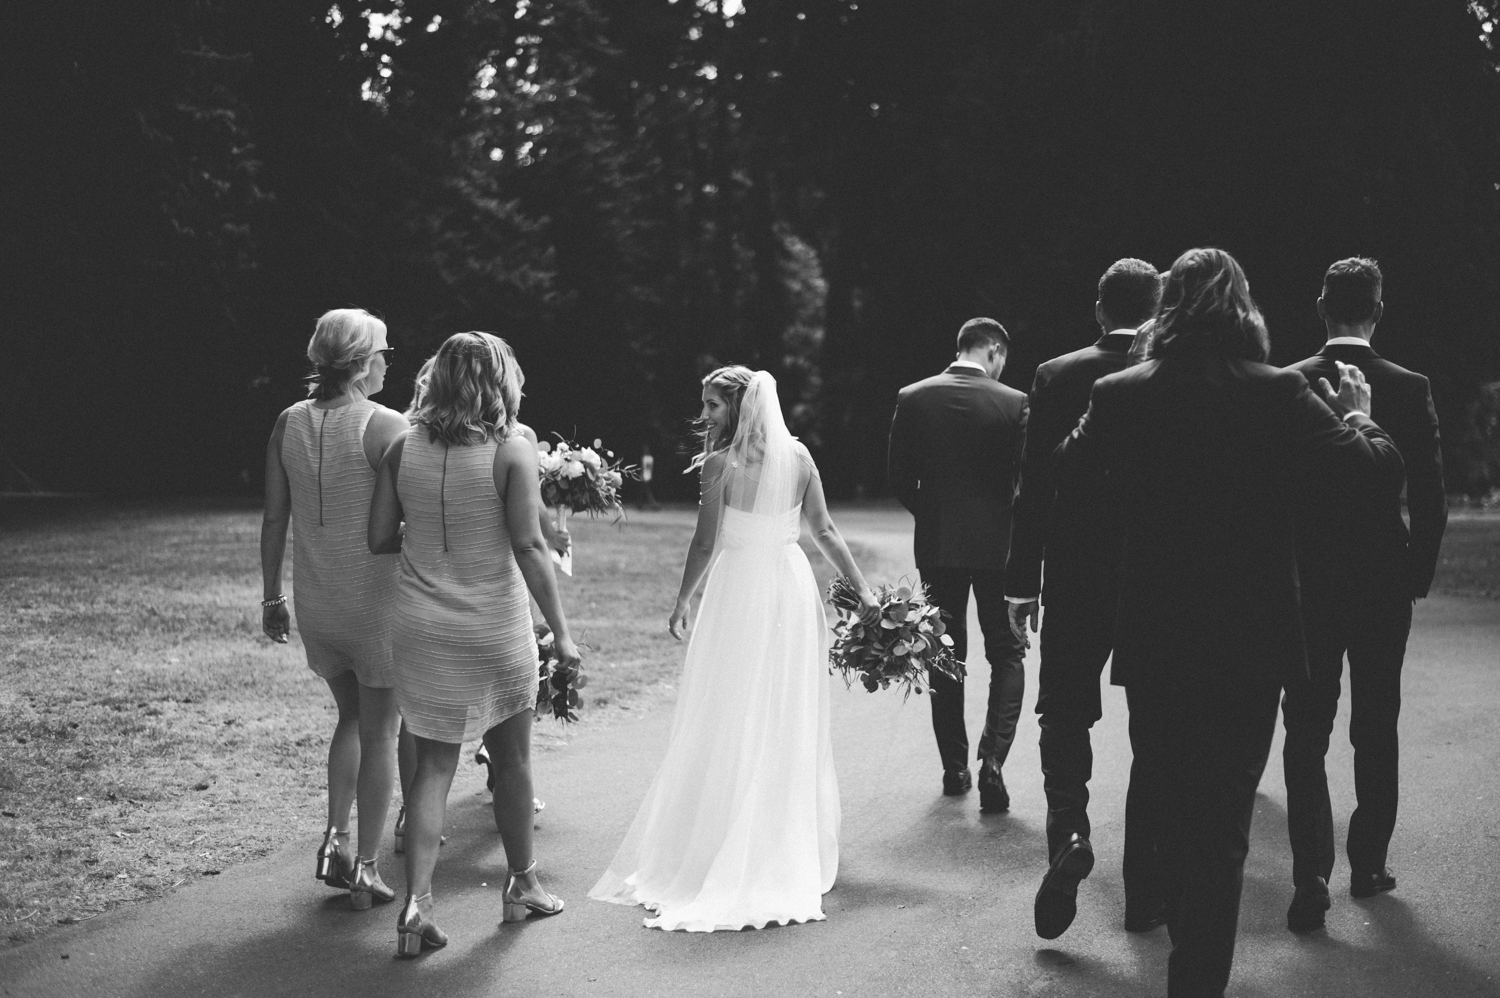 Stanely Park Wedding, Vancouver BC-Jessika Hunter-26.JPG